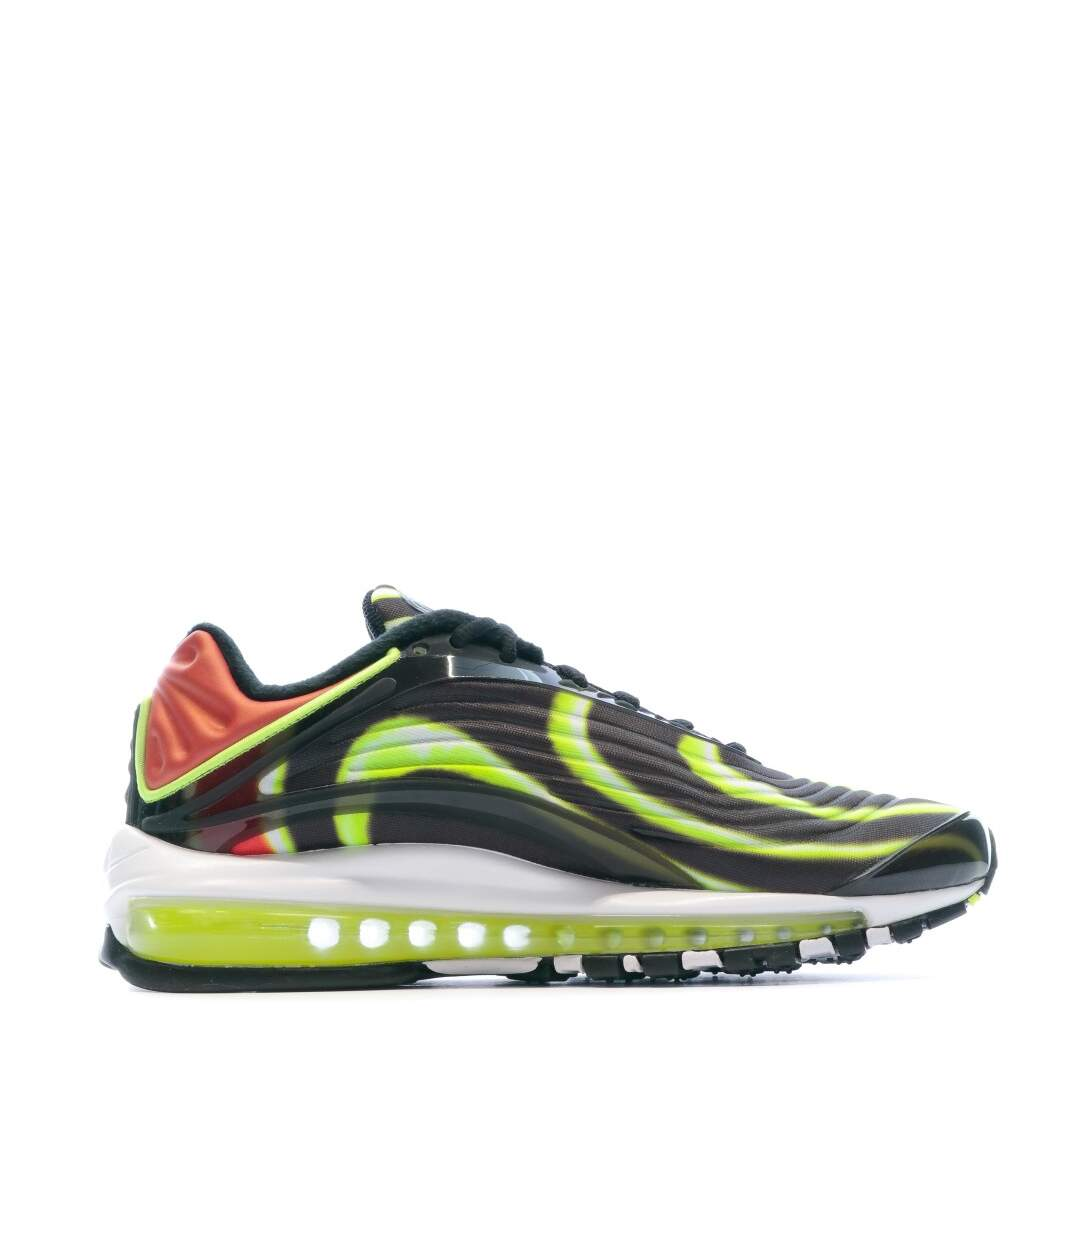 Grande Vente Air Max Deluxe Baskets noir homme Nike dsf.d455nksdKLFHG